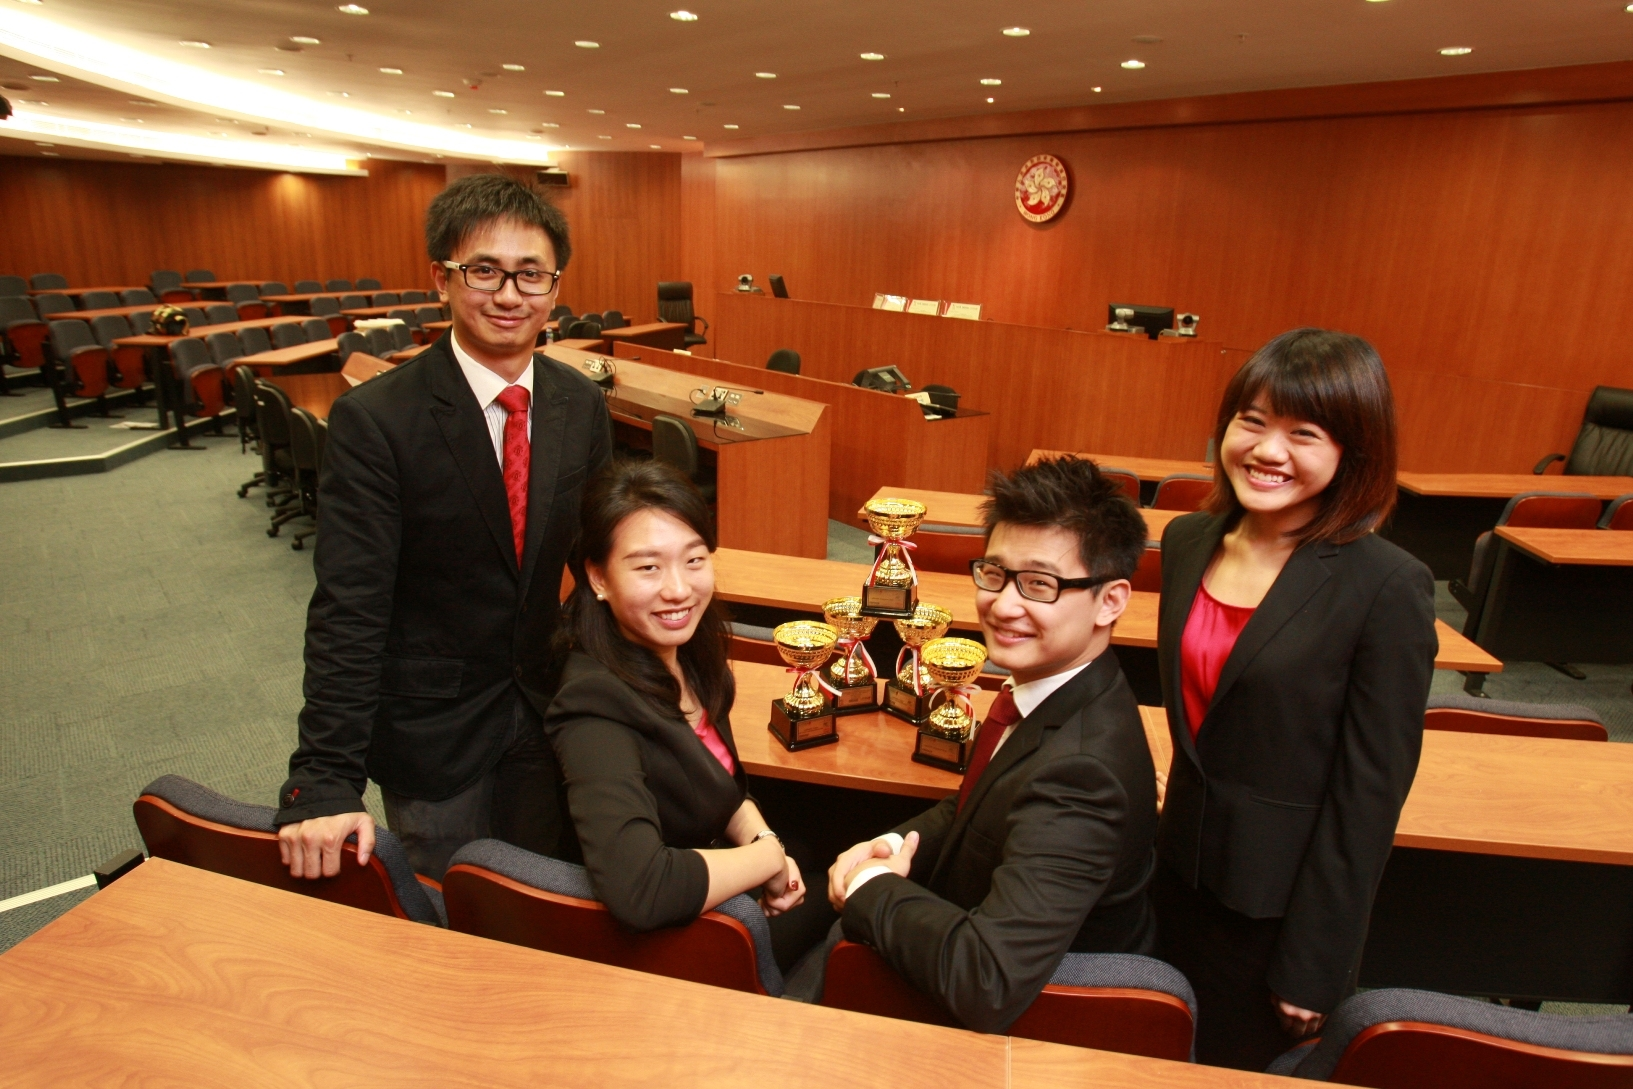 The champion team of the 7th LAWASIA International Moot Competition (from left): Ivan Lee (LLB Year 4 student), Angela Tsui (PCLL), John Li (PCLL) and Alice Leung (PCLL)